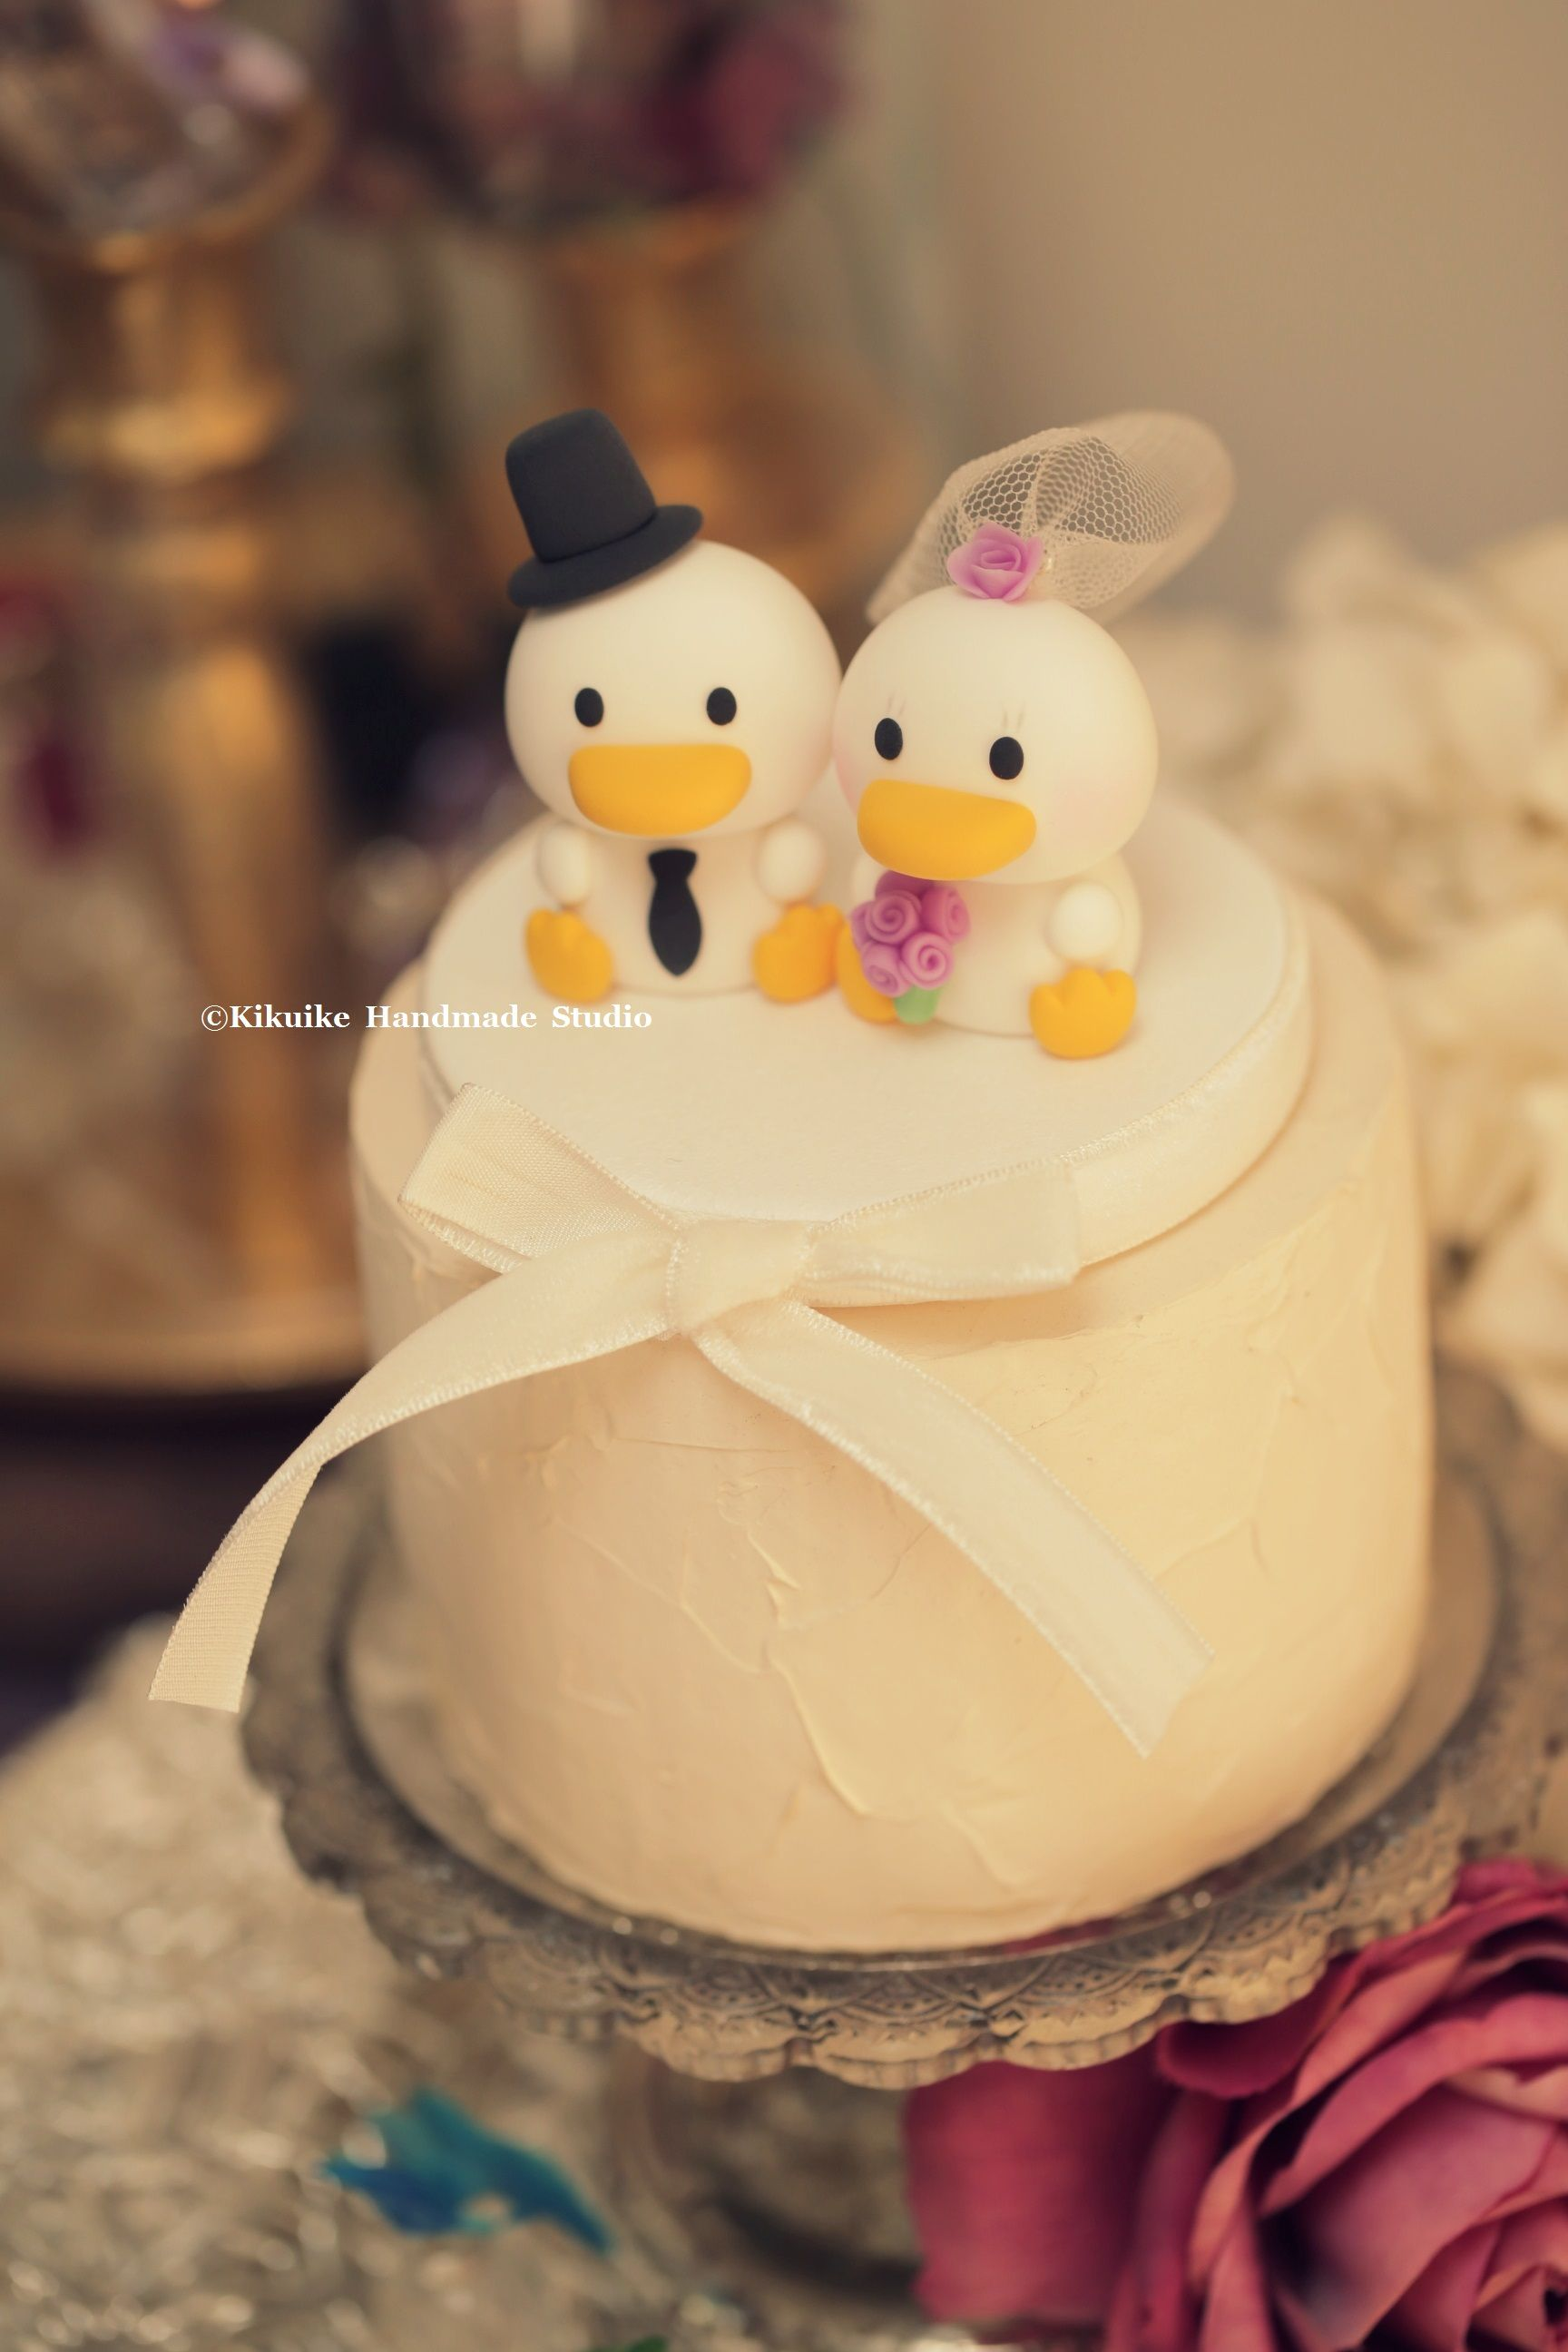 Ducks wedding cake topper | Lovely Animals Topper | Pinterest ...